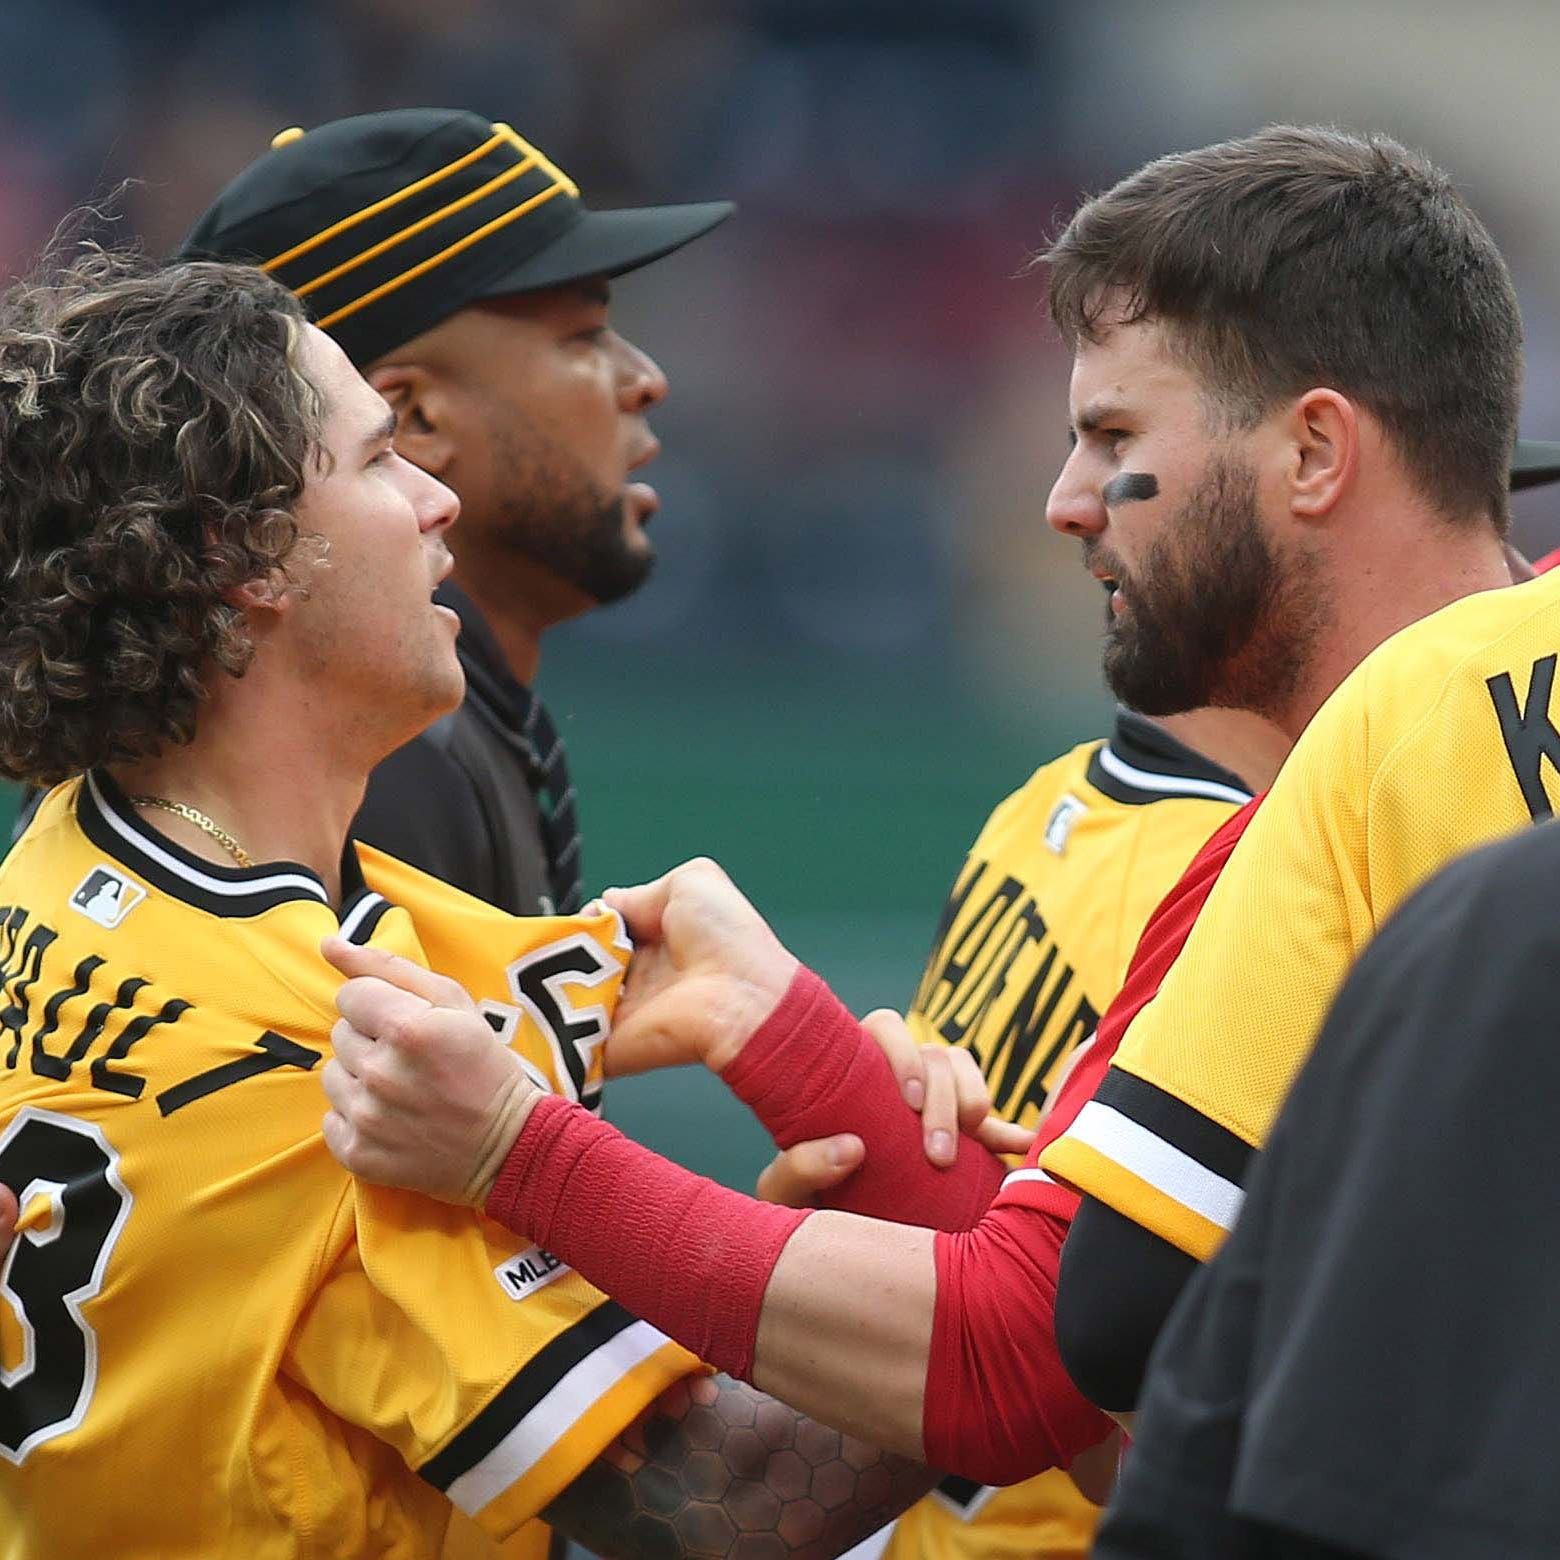 Pittsburgh Pirates pitcher Chris Archer drops appeal for role in brawl with Cincinnati Reds